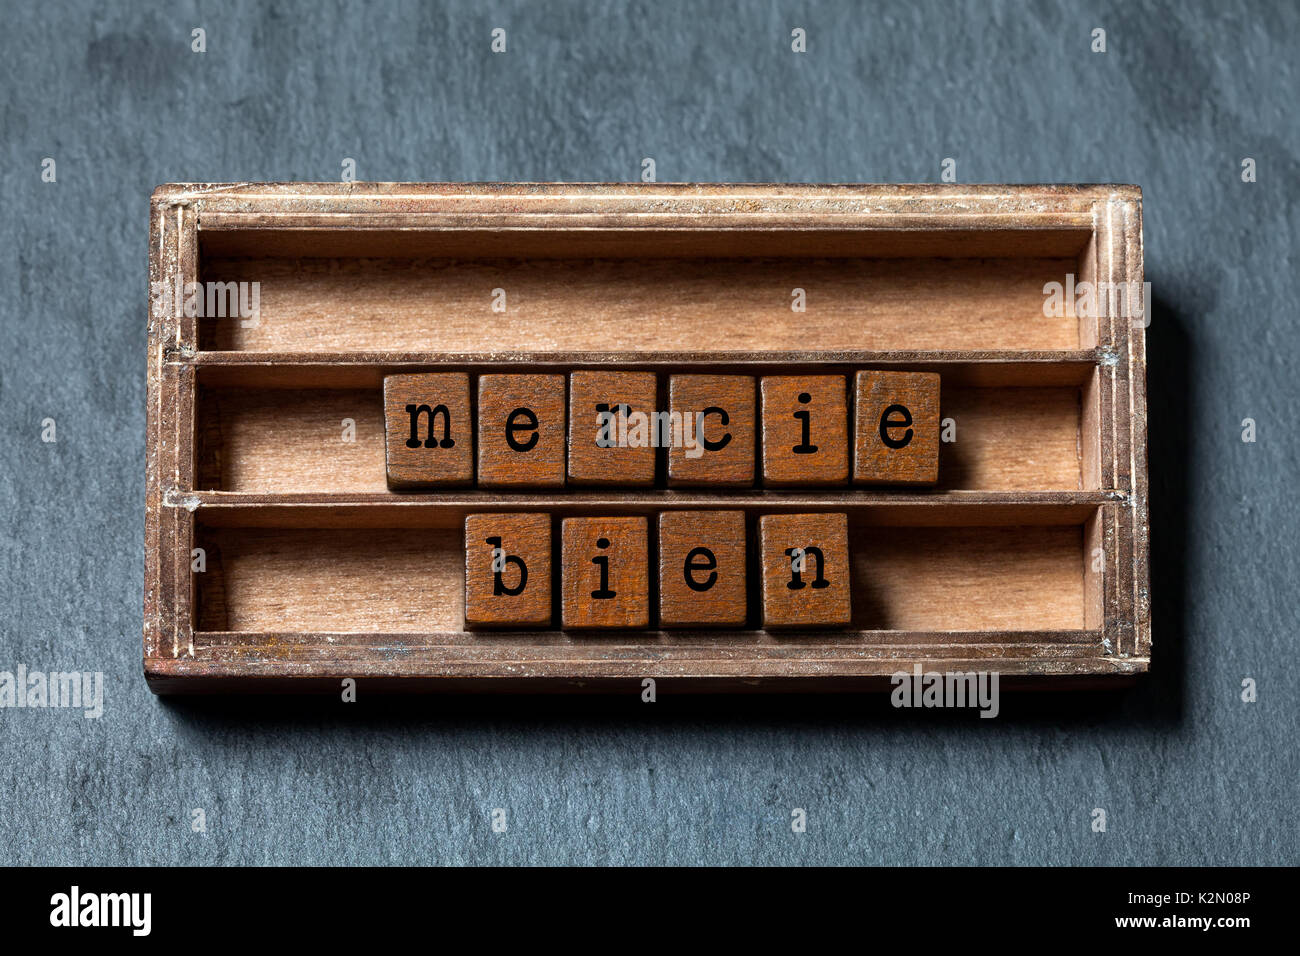 Mercie bien. Thank you very much written in French translation. Vintage box, wooden cubes phrase with old style letters. Gray stone textured background. Close-up, up view, soft focus. - Stock Image